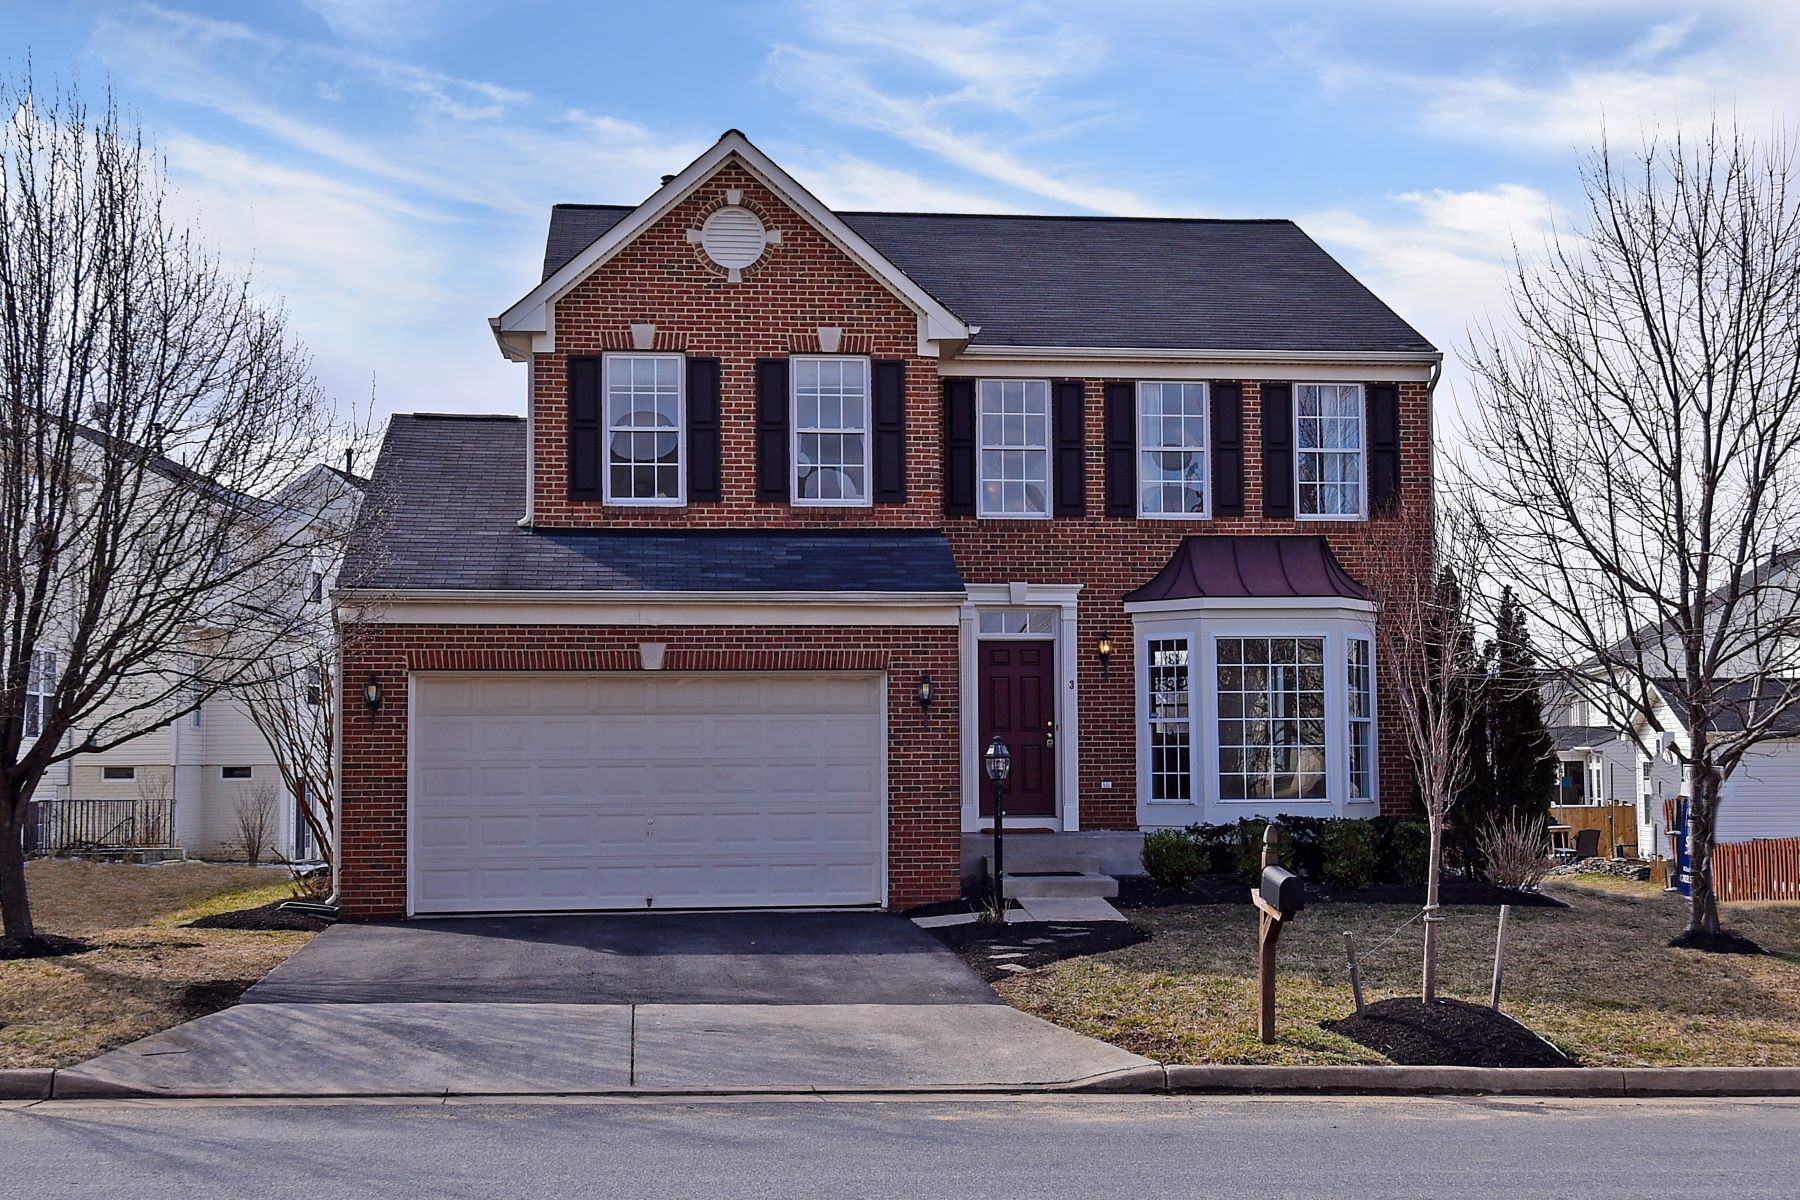 Single Family Home for Sale at Ravenwood in New Town Meadows 3 Tritapoe Place Lovettsville, Virginia 20180 United States